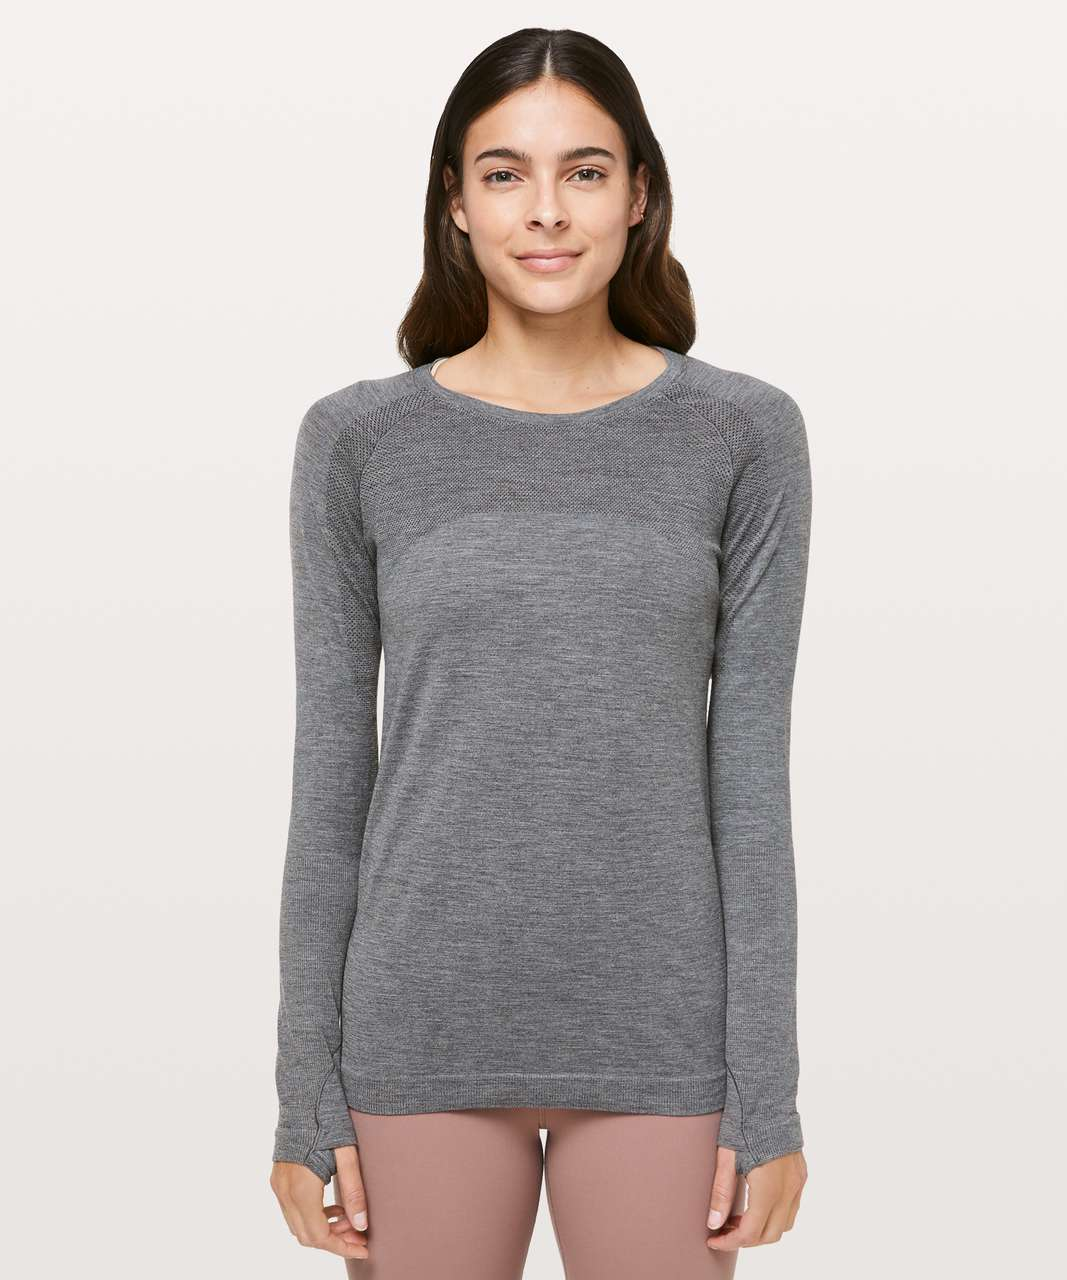 Lululemon Aerial Silk Long Sleeve - Black / White